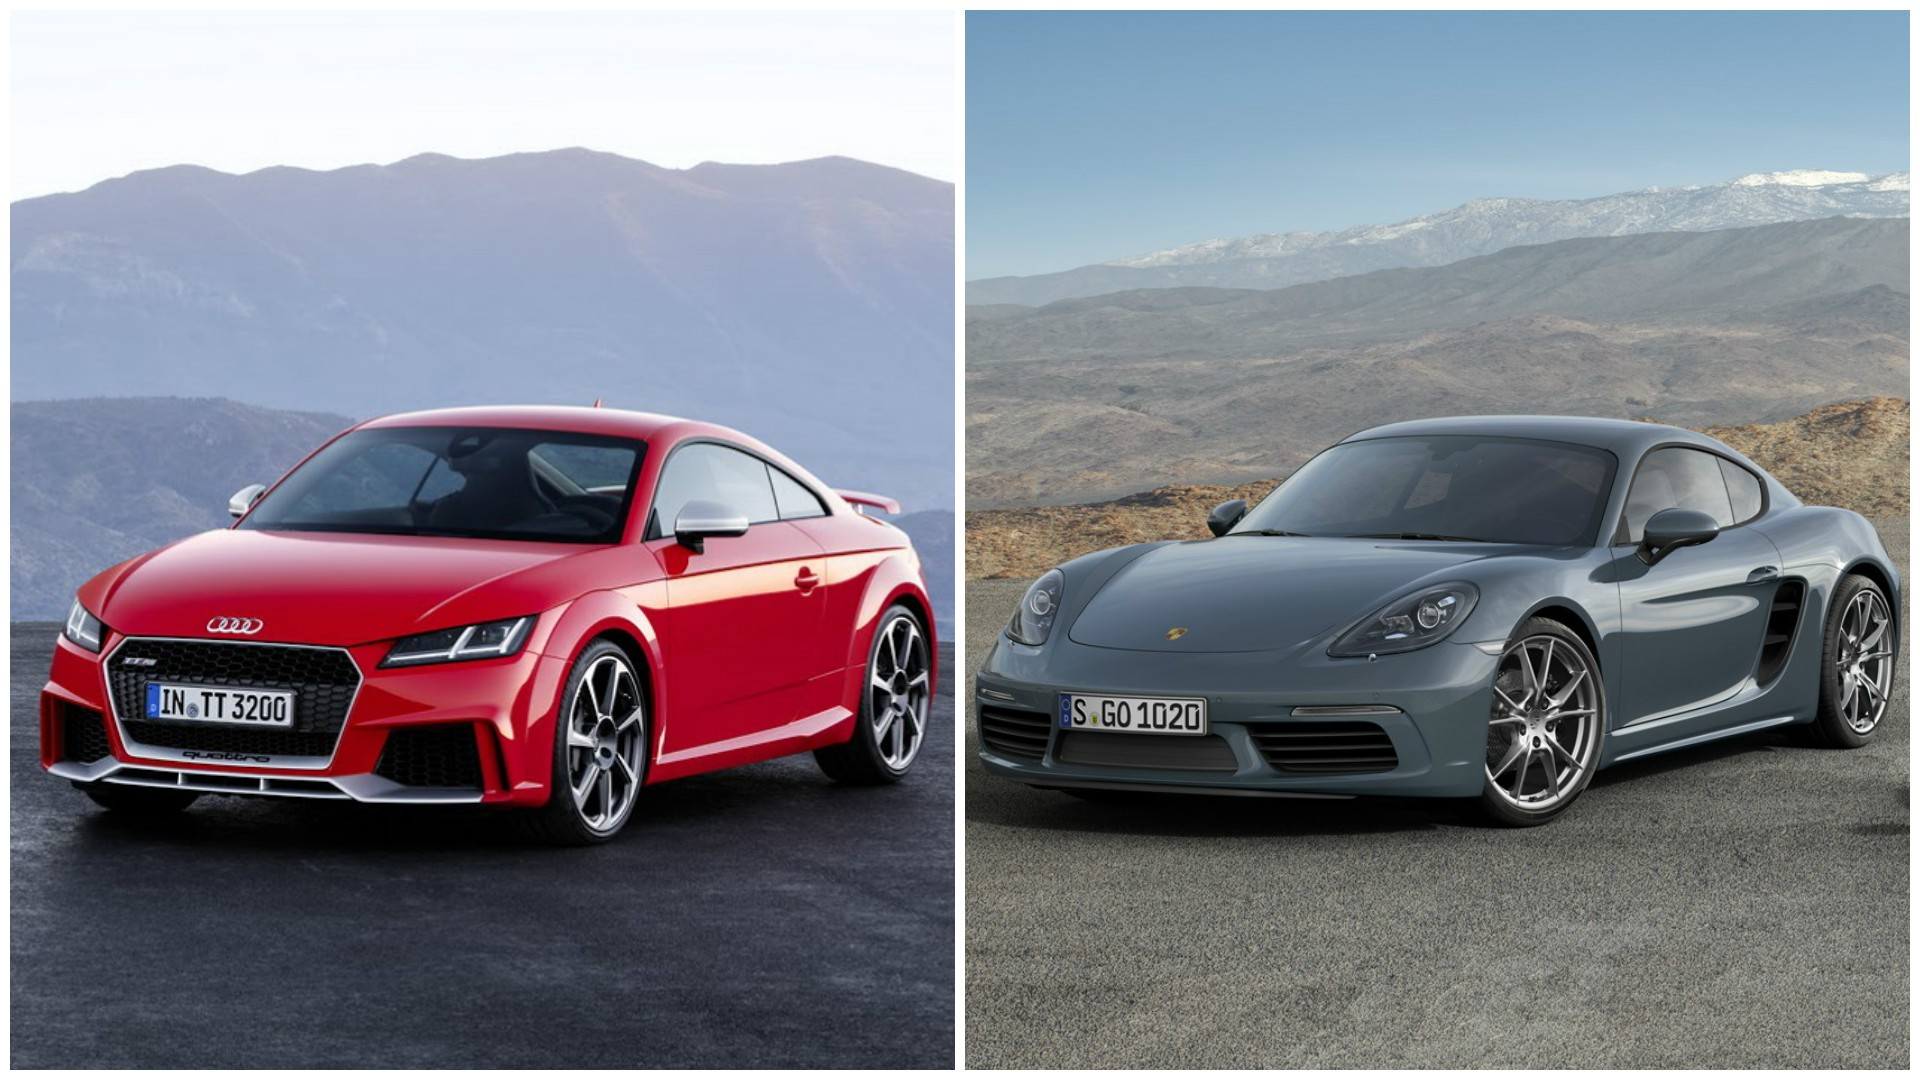 2017 audi tt rs vs porsche 718 boxster and 718 cayman photo comparison autoevolution. Black Bedroom Furniture Sets. Home Design Ideas